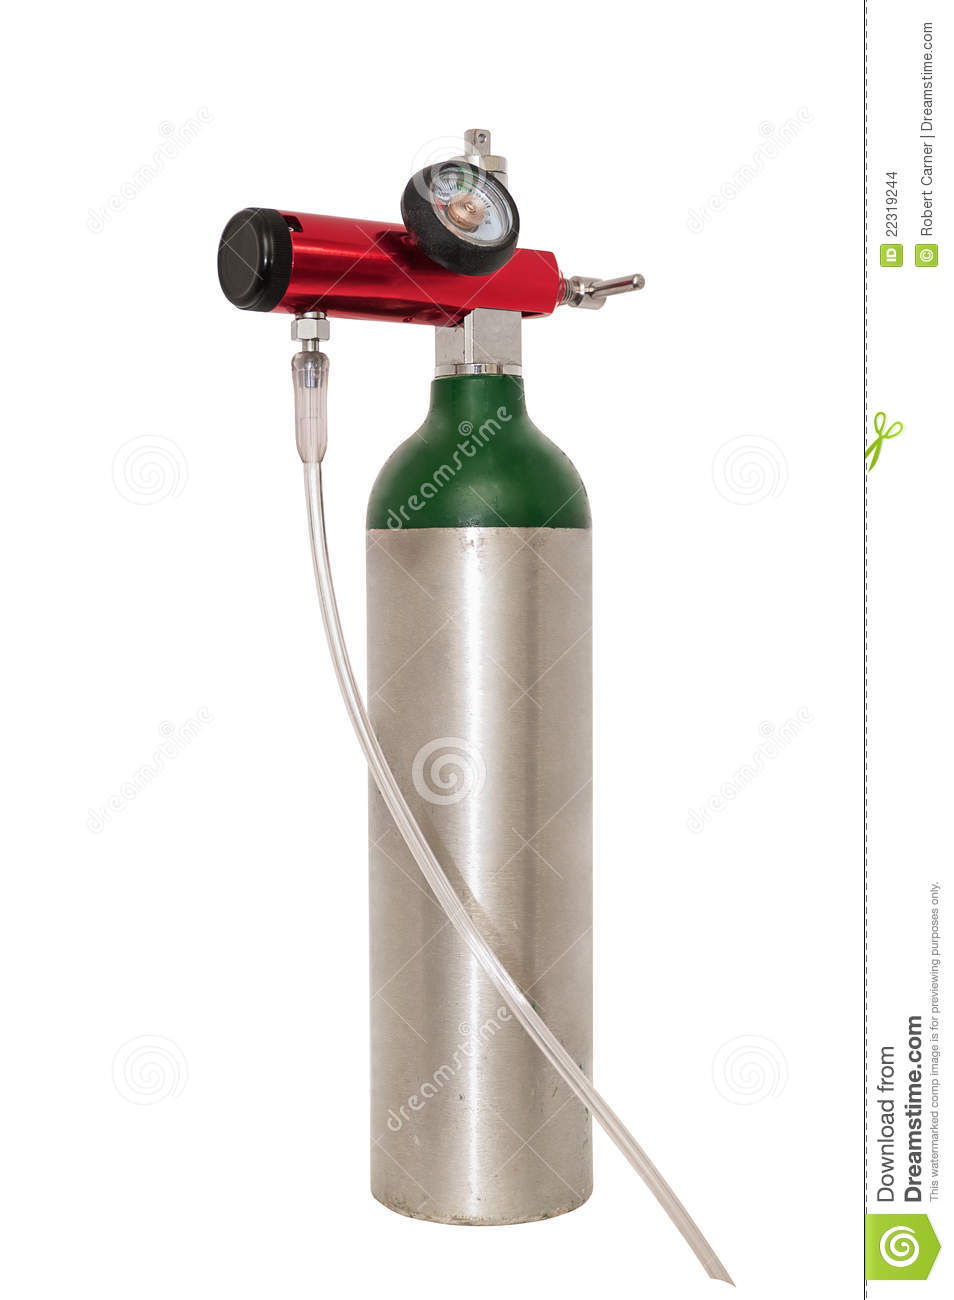 Medical Oxygen Cylinder together with Anime angels and demons together with ReceiverTank also 203368730 furthermore 16889034. on sizes of oxygen tanks for home use